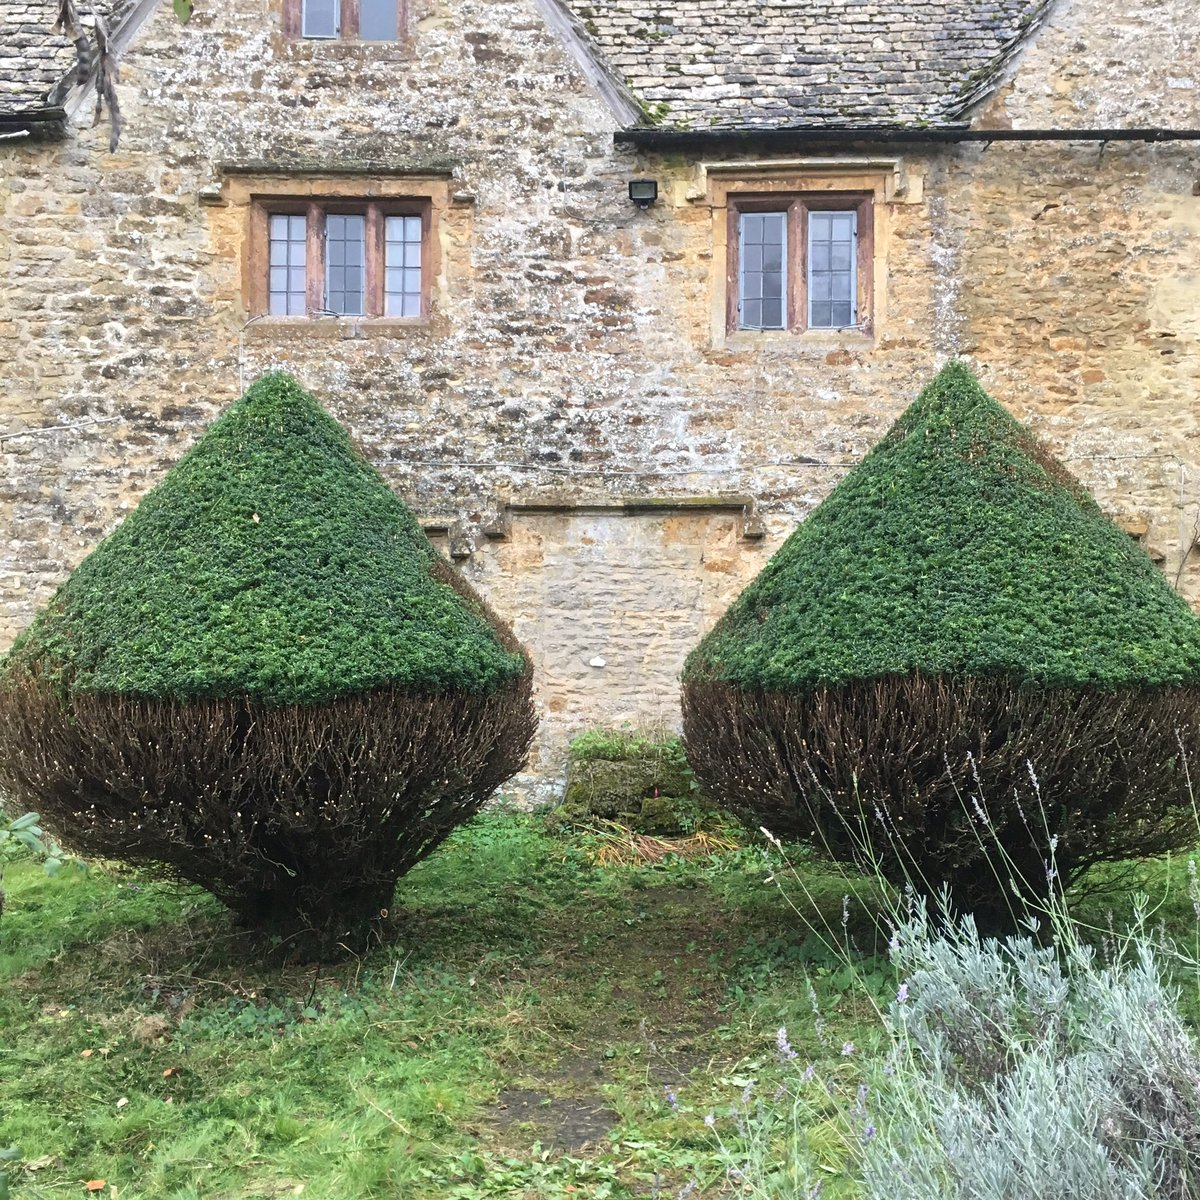 James Todman On Twitter Renovating Old Yew Topiary Stage 1 Cut Back As Close As Possible To Original Shape Doesn T Look Pretty But Beauty Of Yew Is That It Regrows From Old